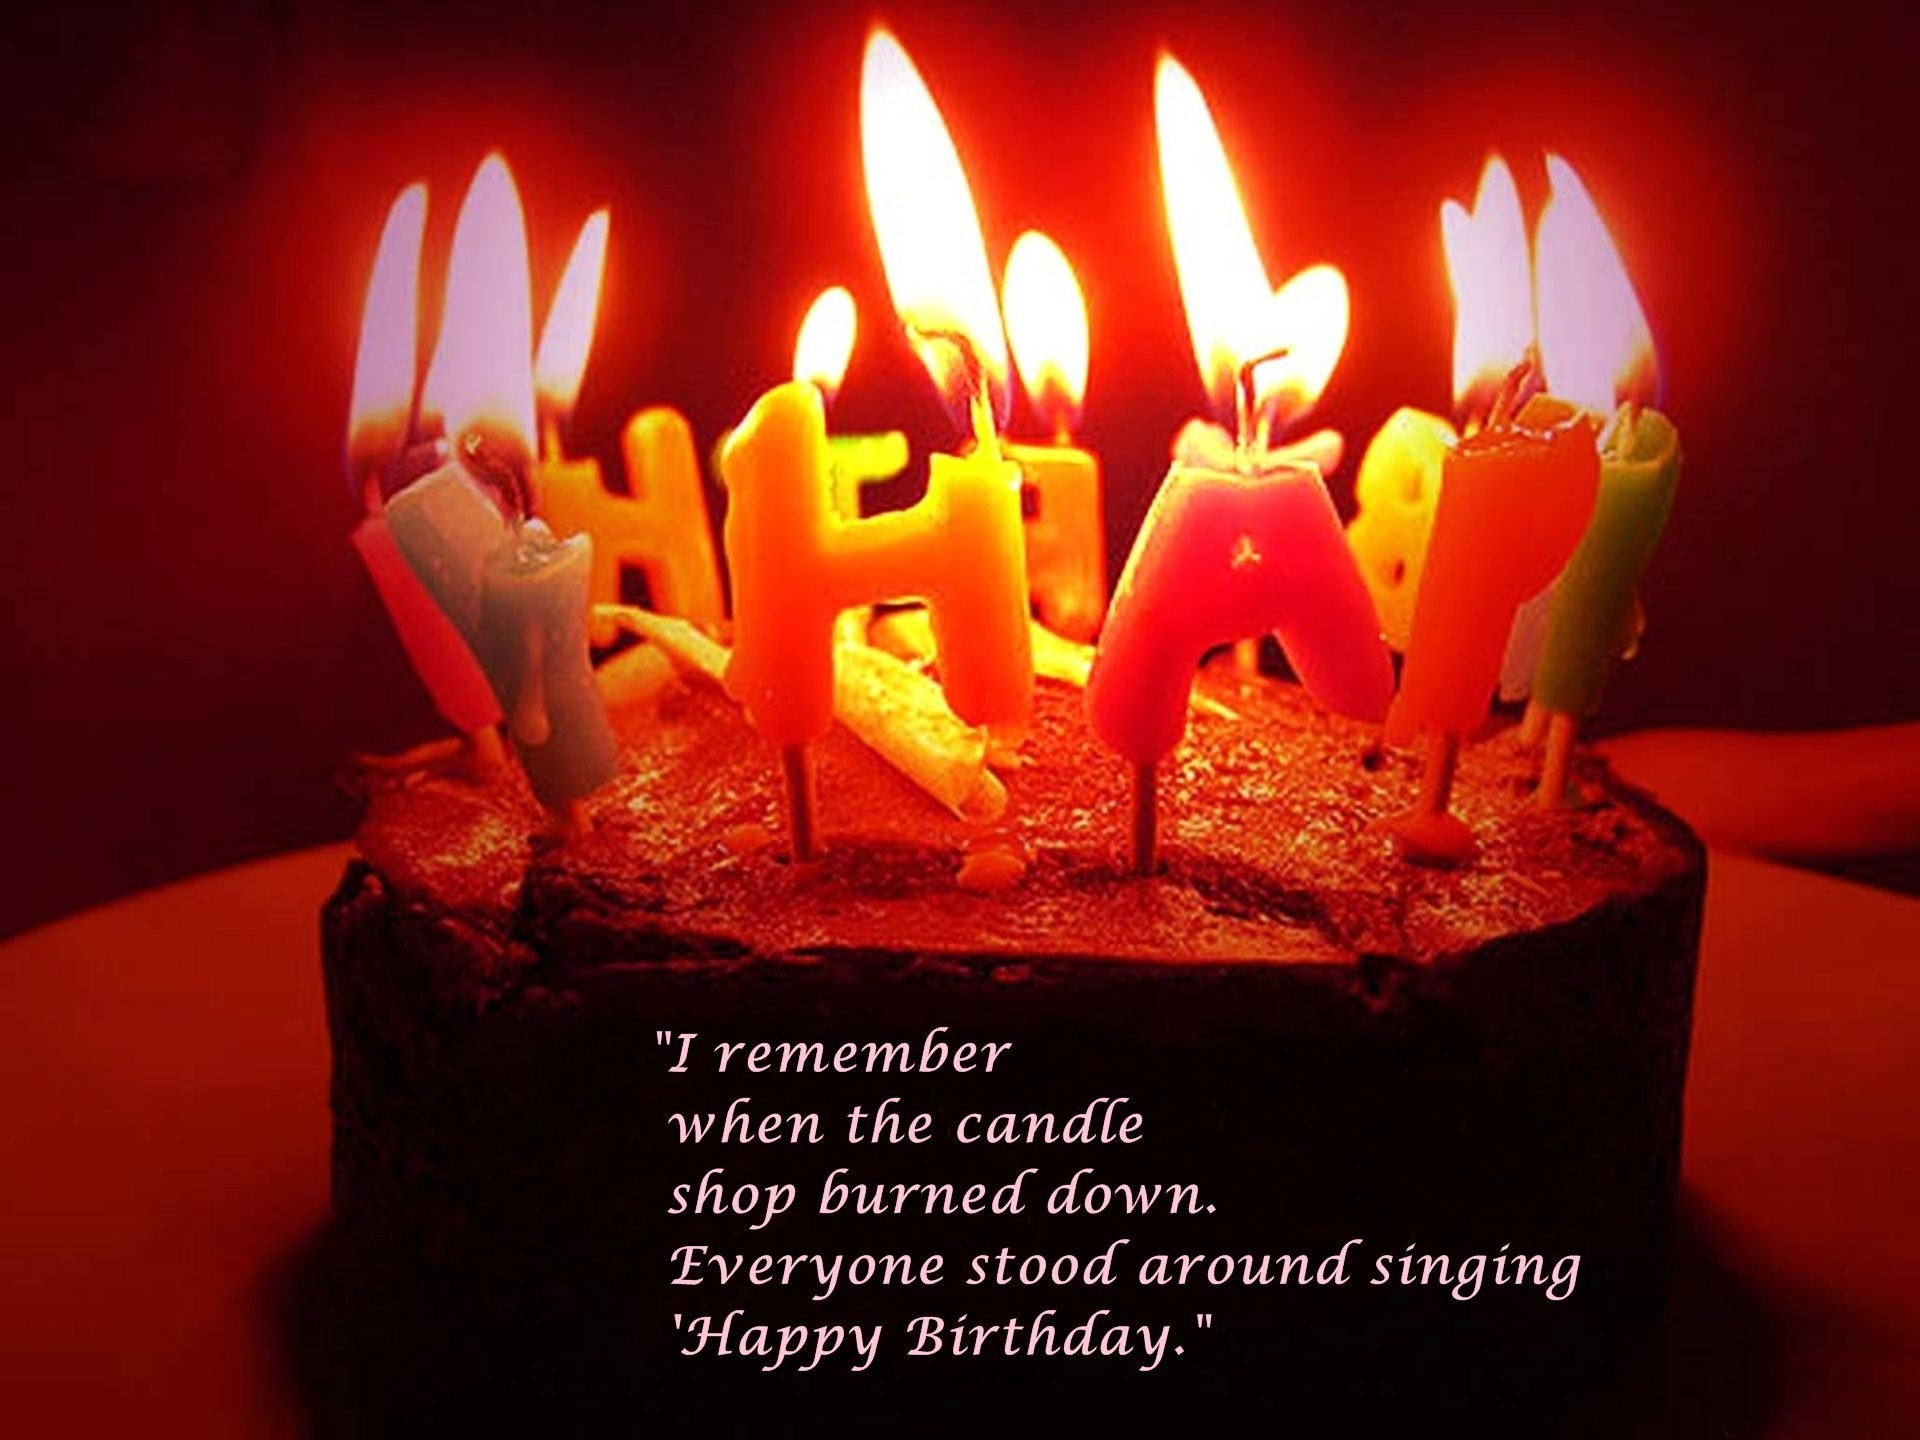 birthday hd images with quotes ; Happy-BirtHDay-Quotes-HD-Wallpaper-00276